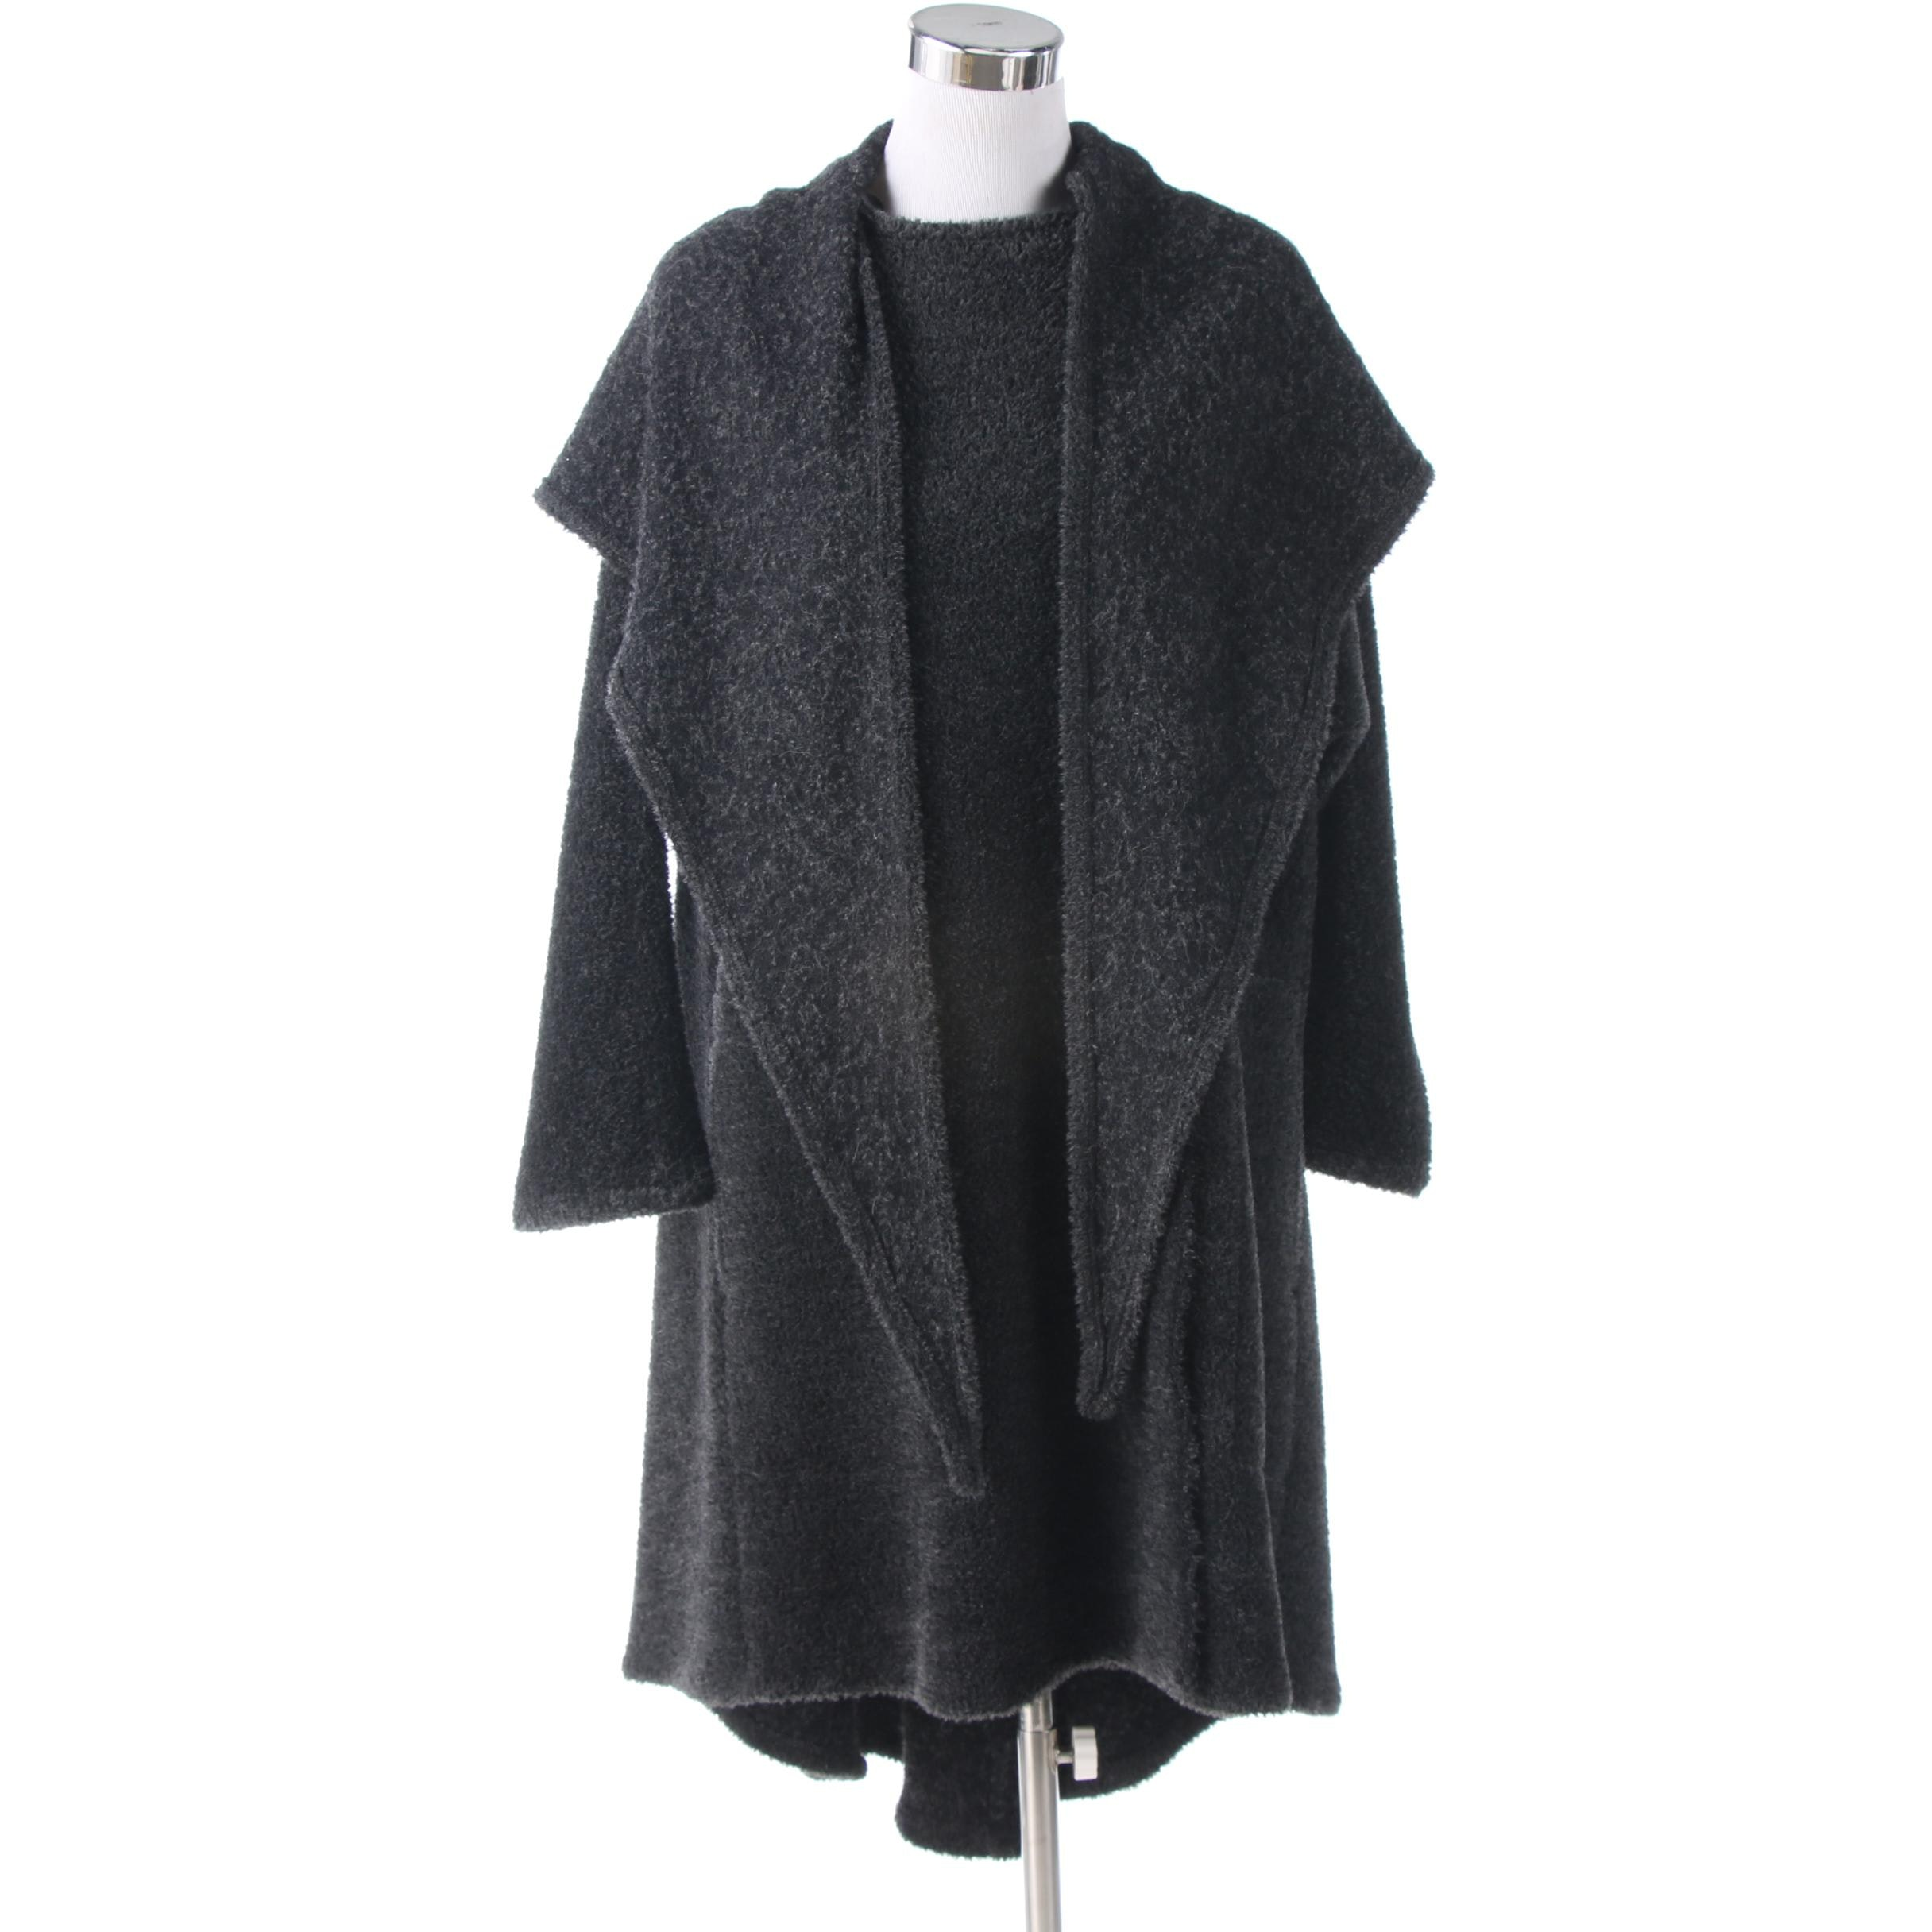 YEOHLEE New York Hooded Alpaca Wool Blend Cape Coat